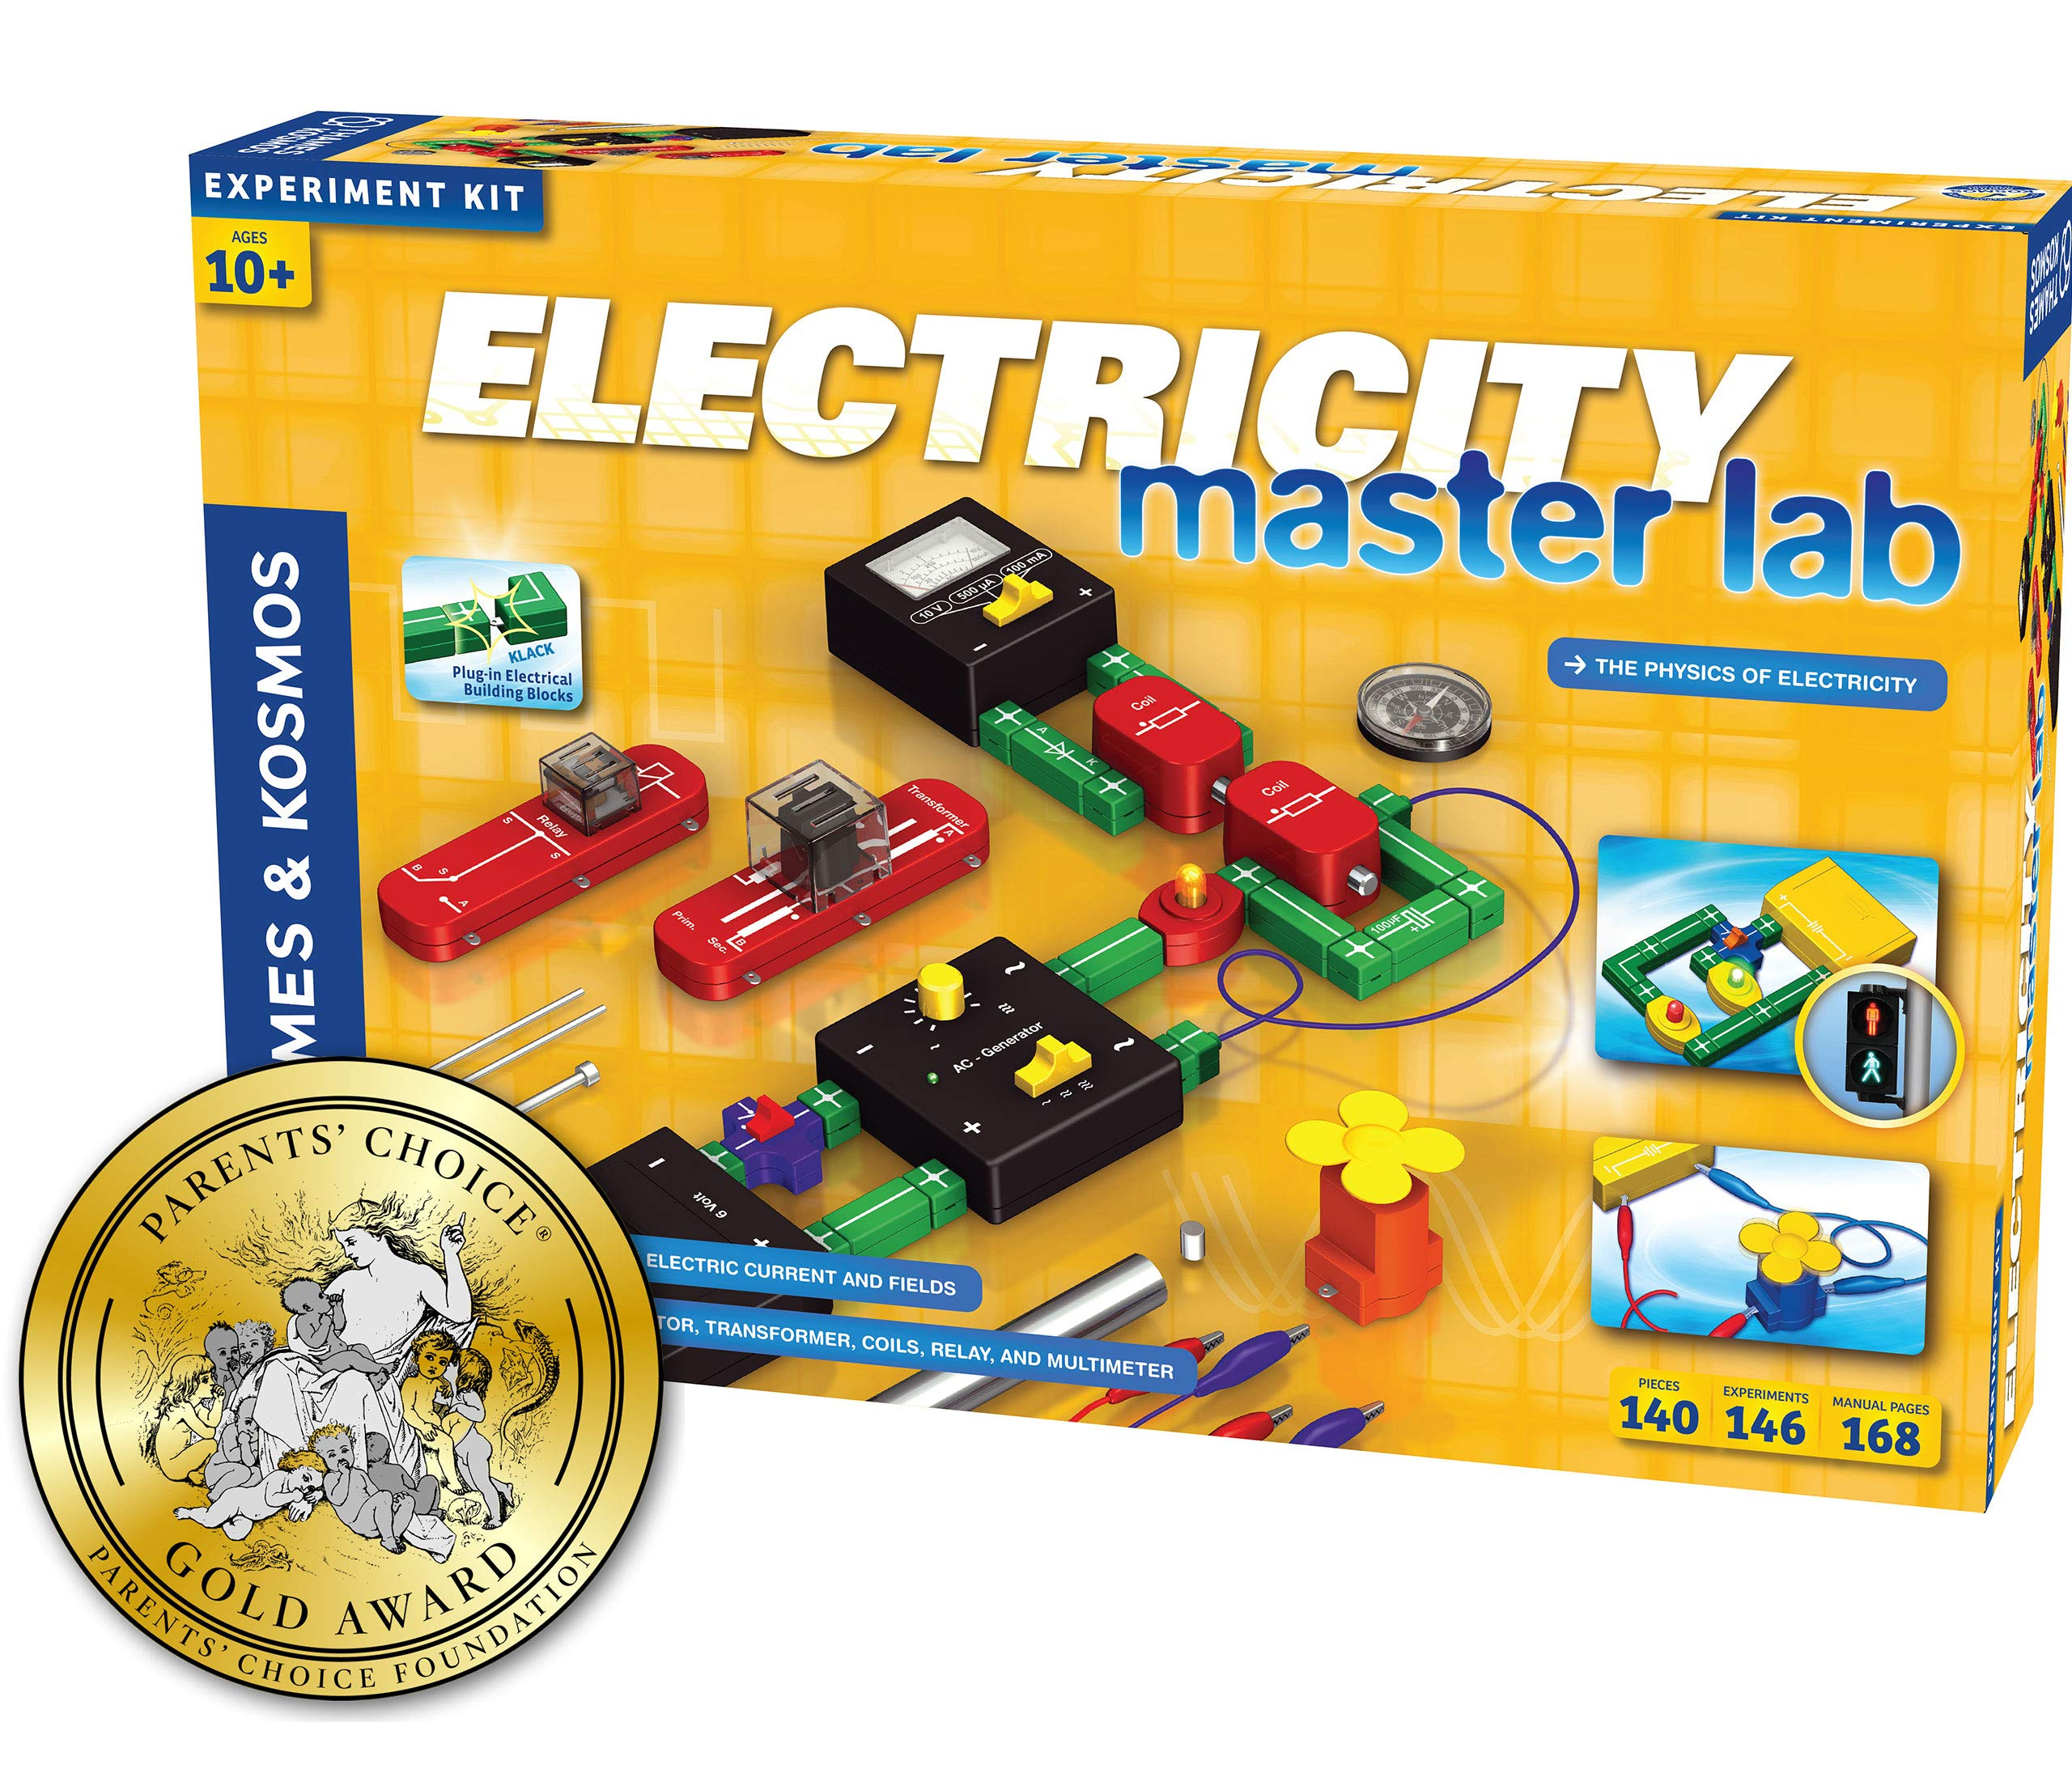 Thames & Kosmos Electricity: Master Lab Science Kit | 119 Experiments | Alternating Current, Direct Current, Electrical Engineering, Circuitry, More | Parents' Choice Gold Award Winner